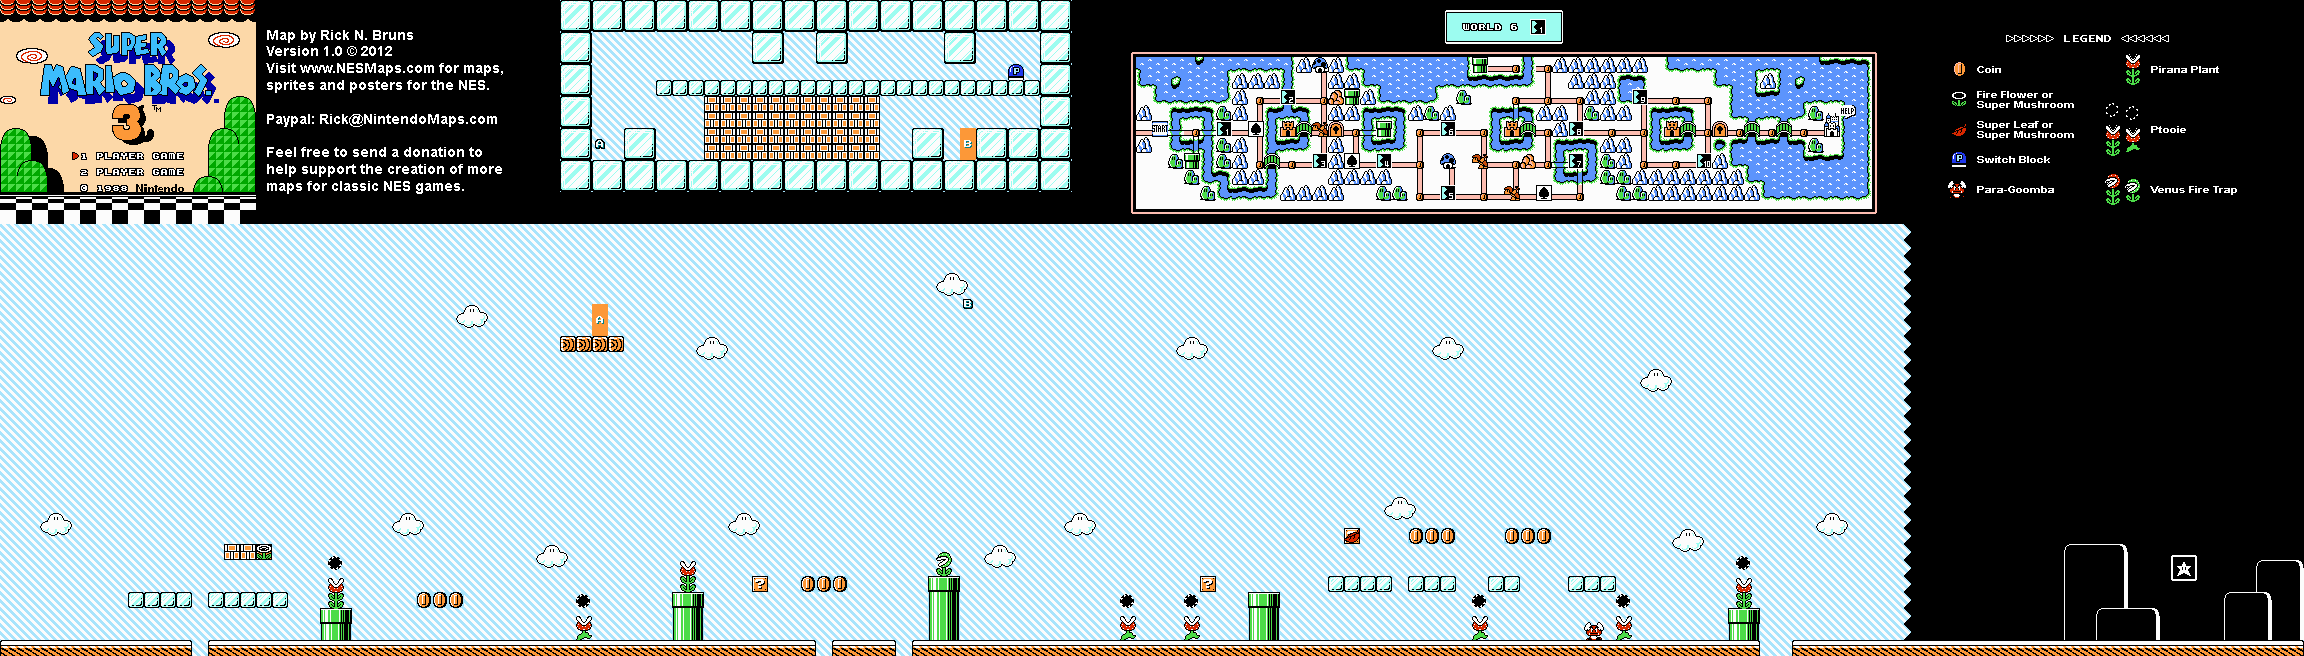 Super mario bros 3 world 6 1 map png v10 neoseeker walkthroughs world 6 1 map png gumiabroncs Image collections